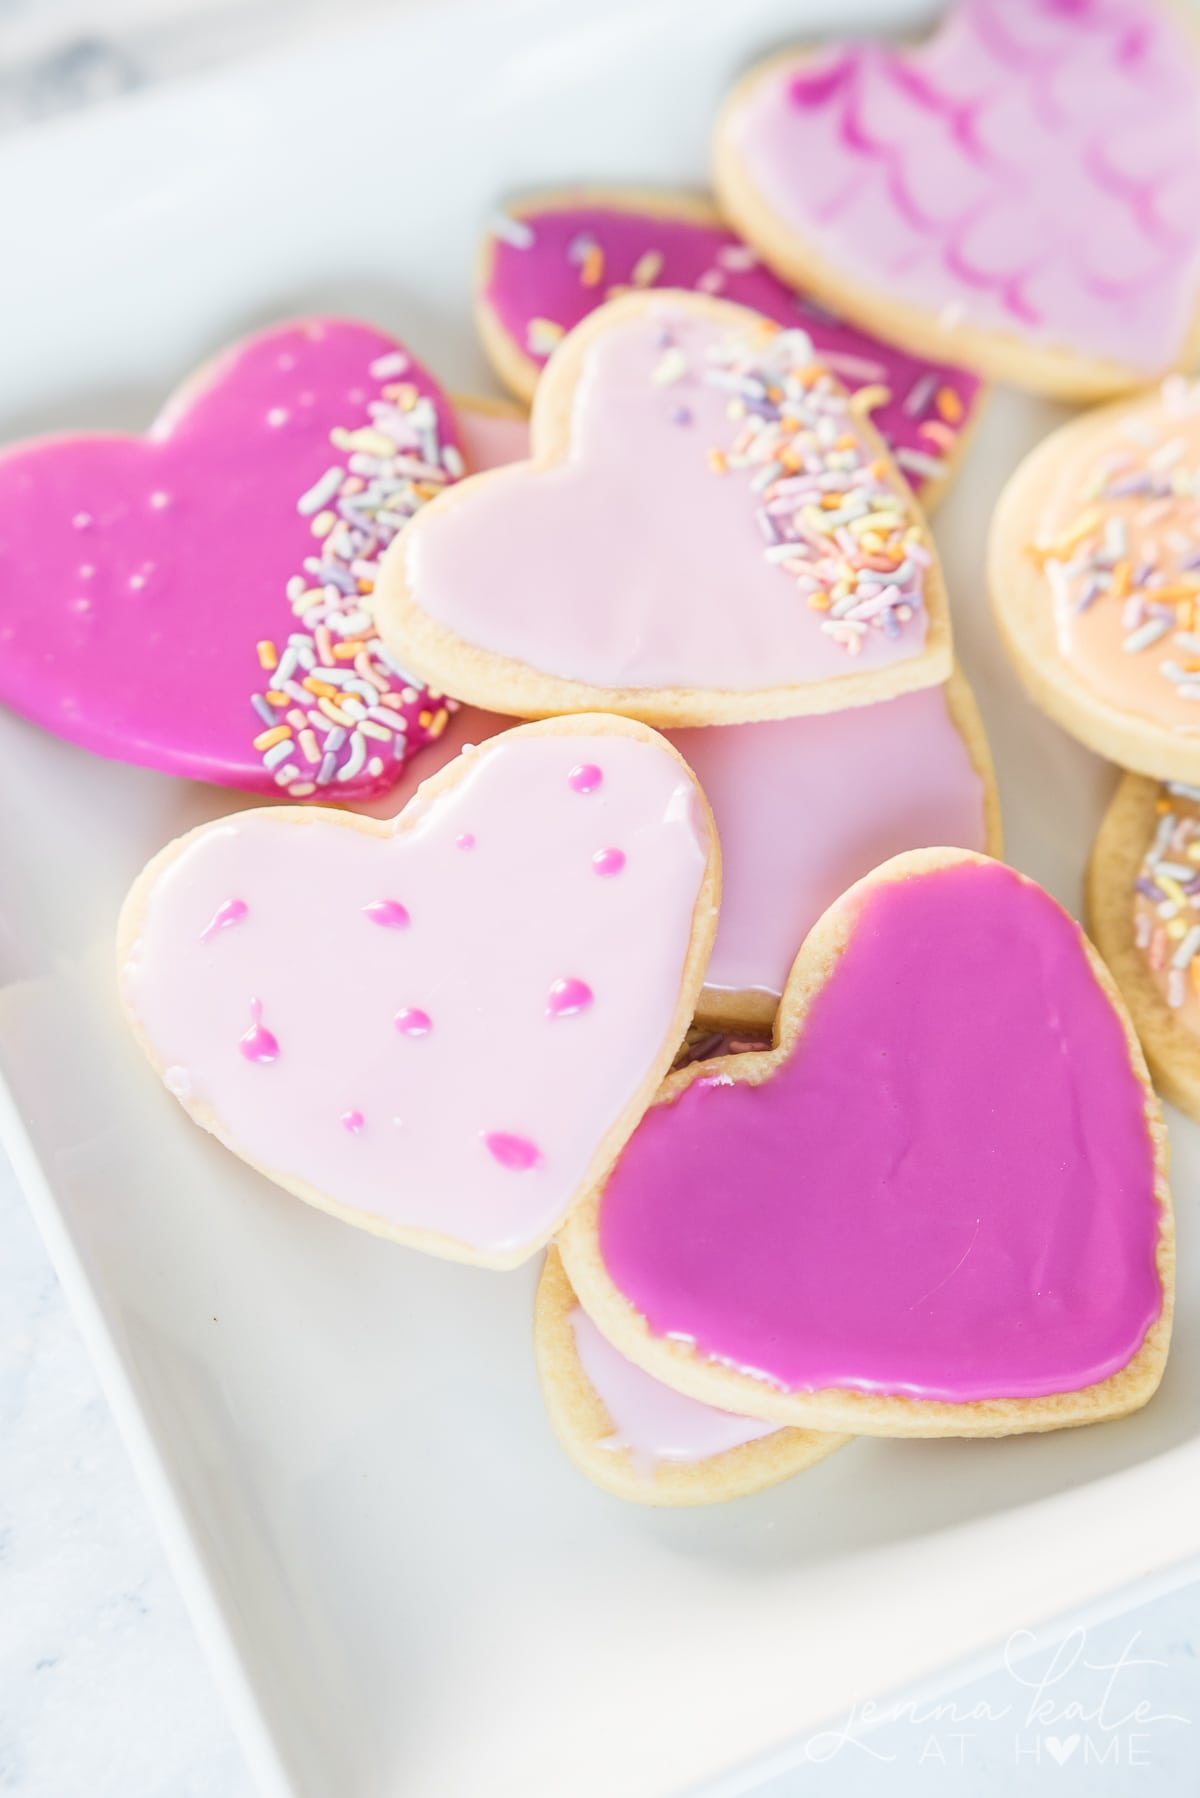 confectioners sugar icing made pink on frosted cut out cookies